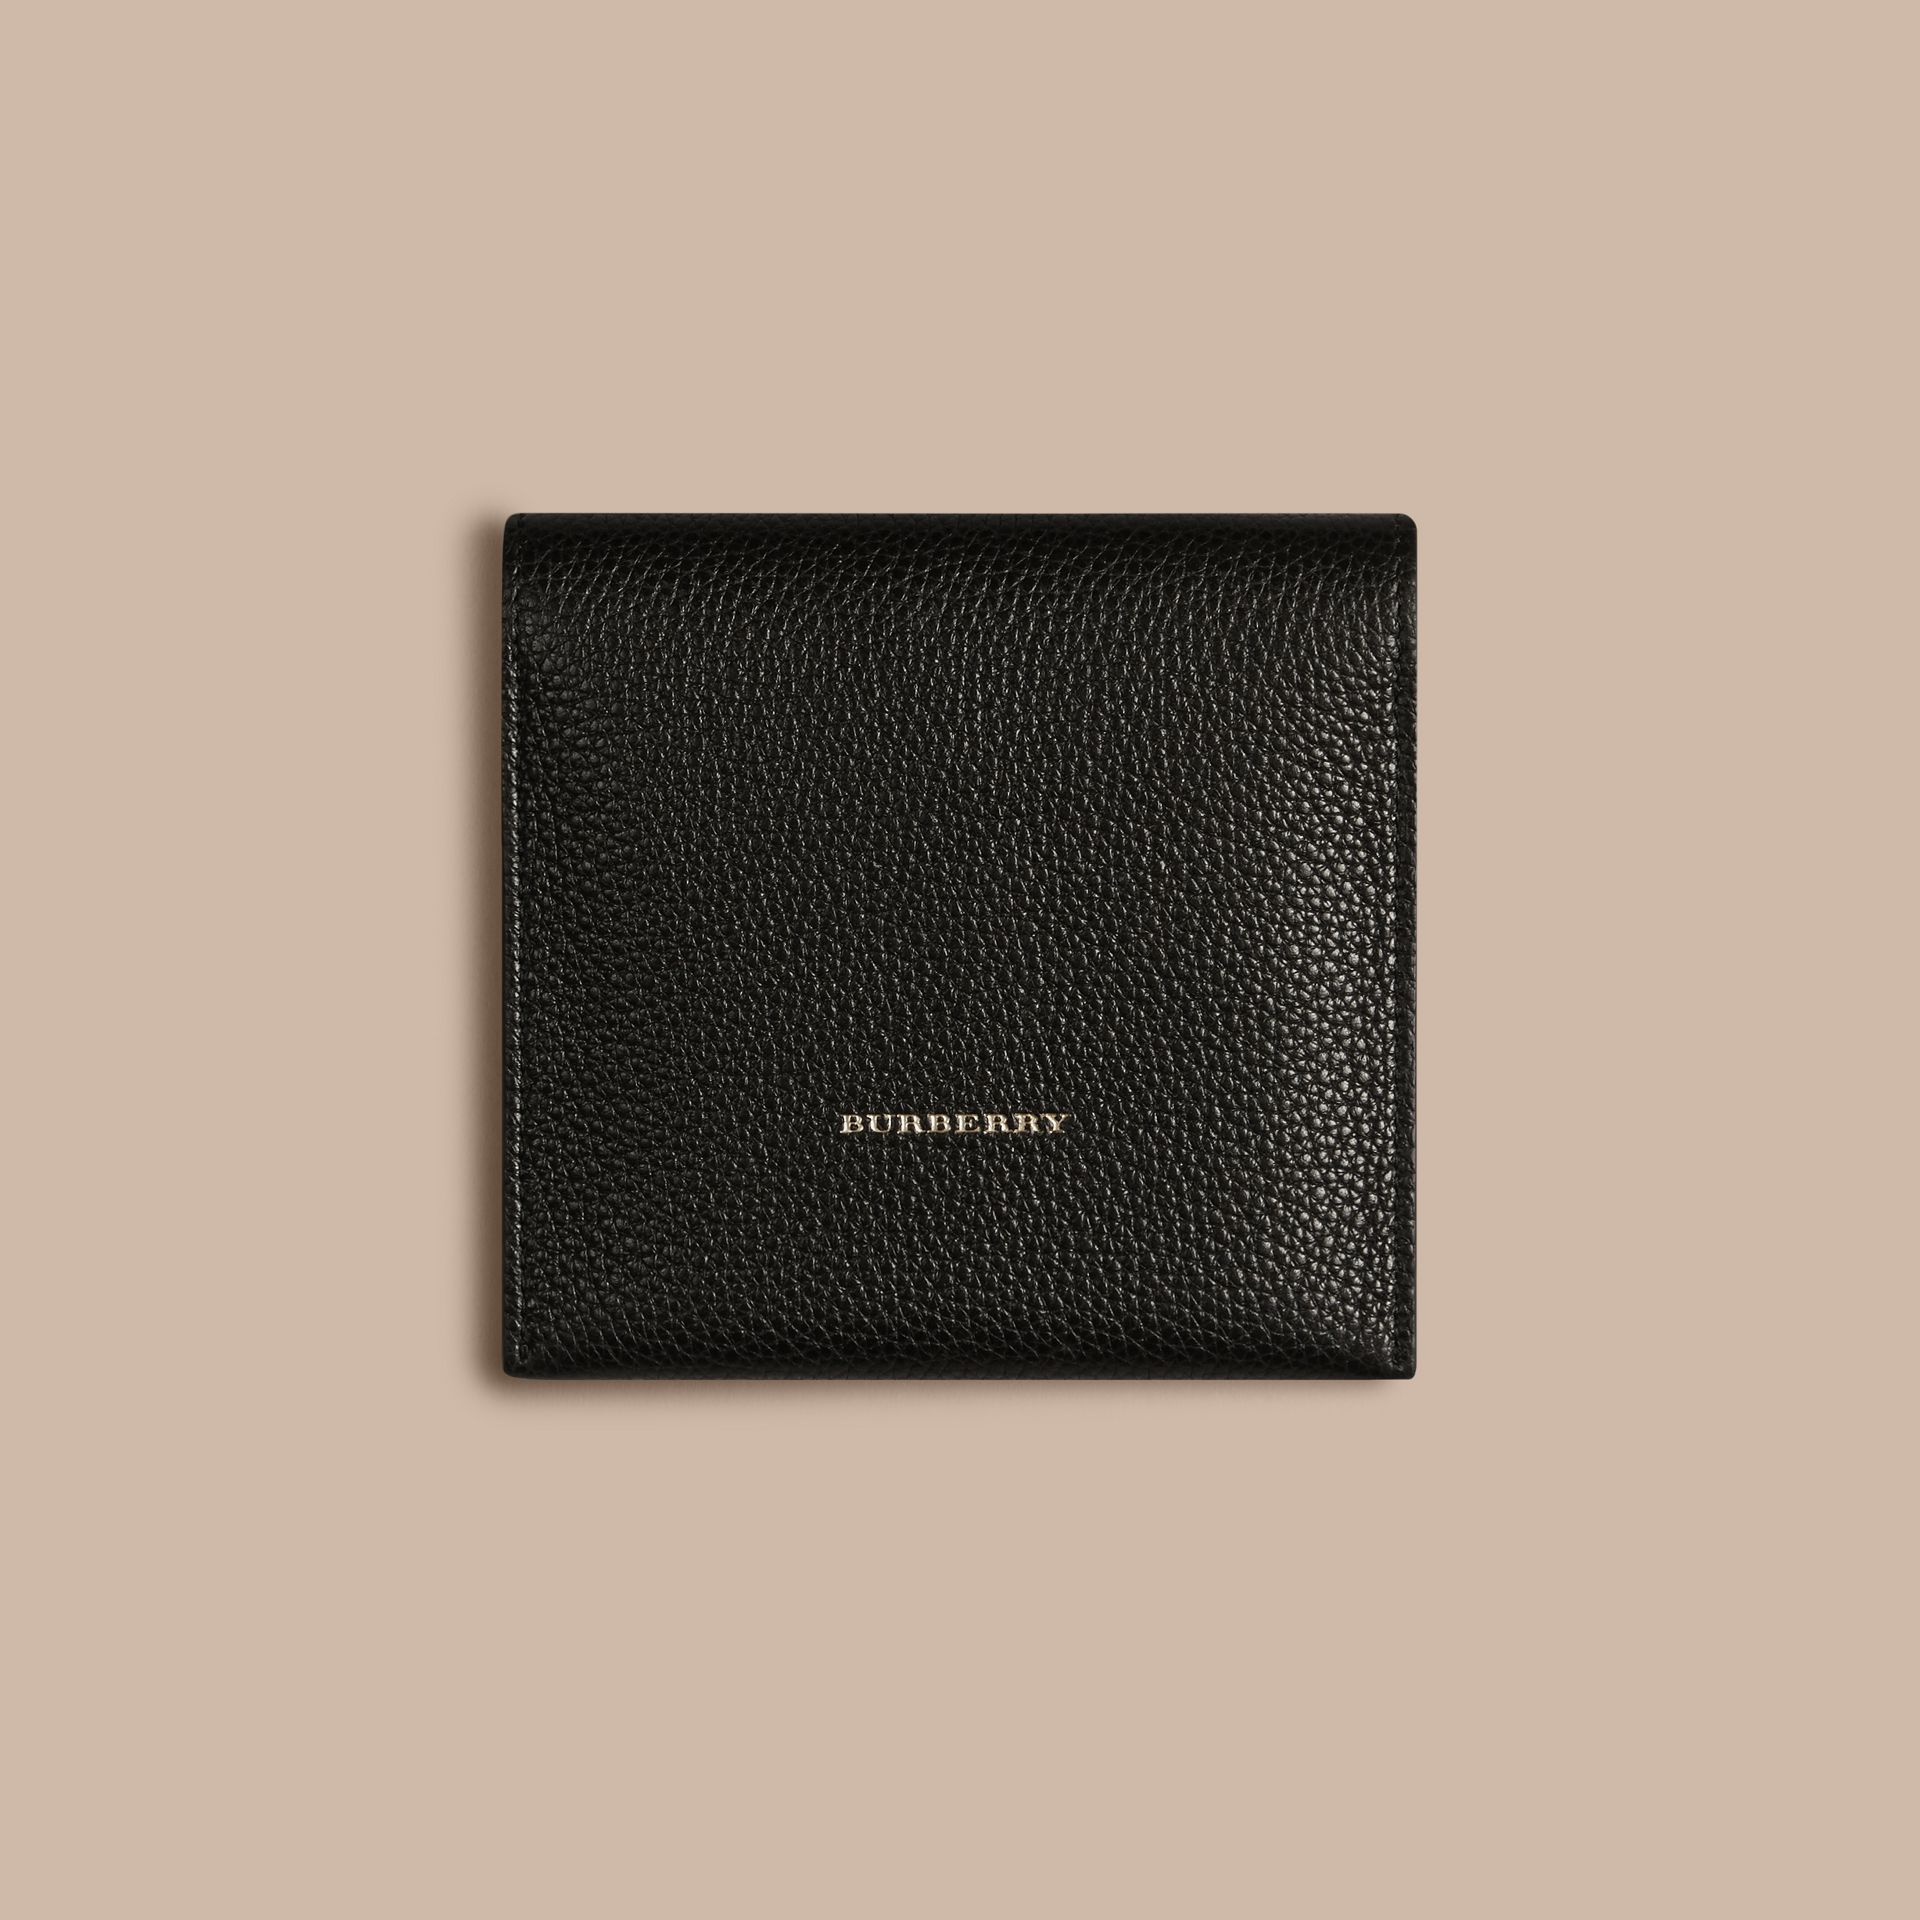 Grainy Leather Cufflink Case in Black - Men | Burberry - gallery image 3